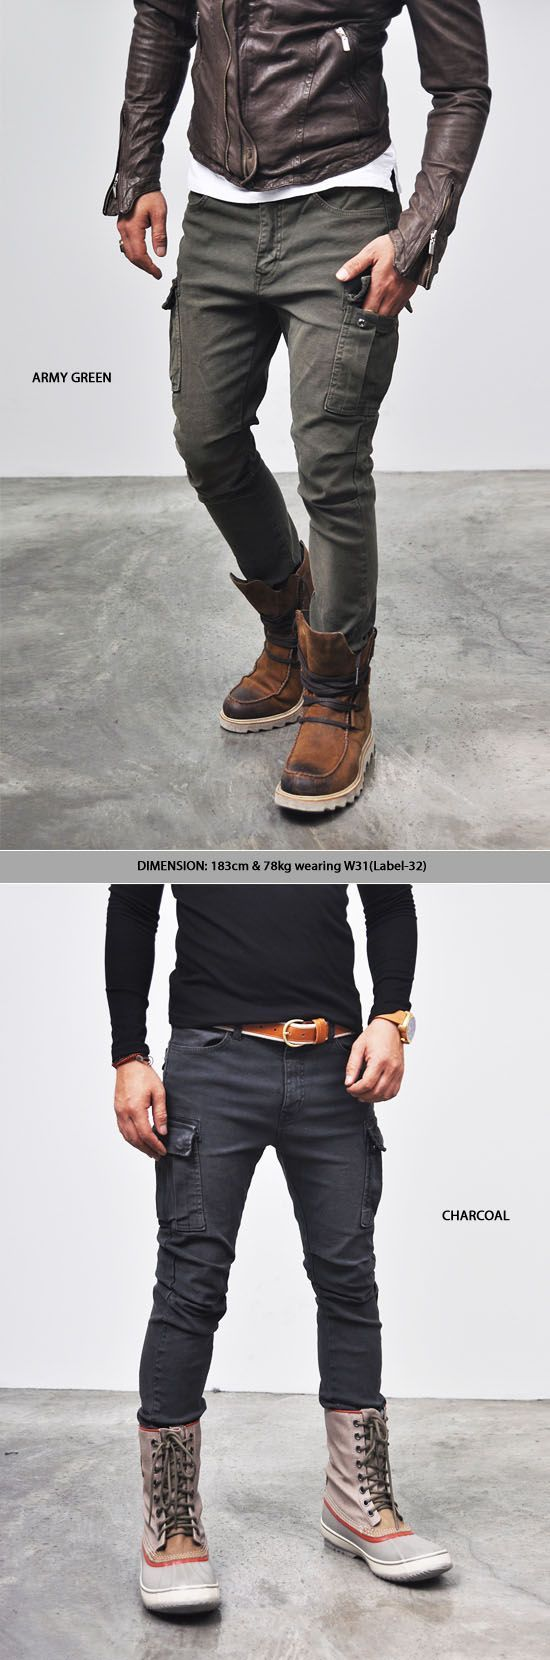 Bottoms :: Pants :: Vintage Oil Washed Slim Pocket Cargo-Pants 47 - Mens Fashion Clothing For An Attractive Guy Look: